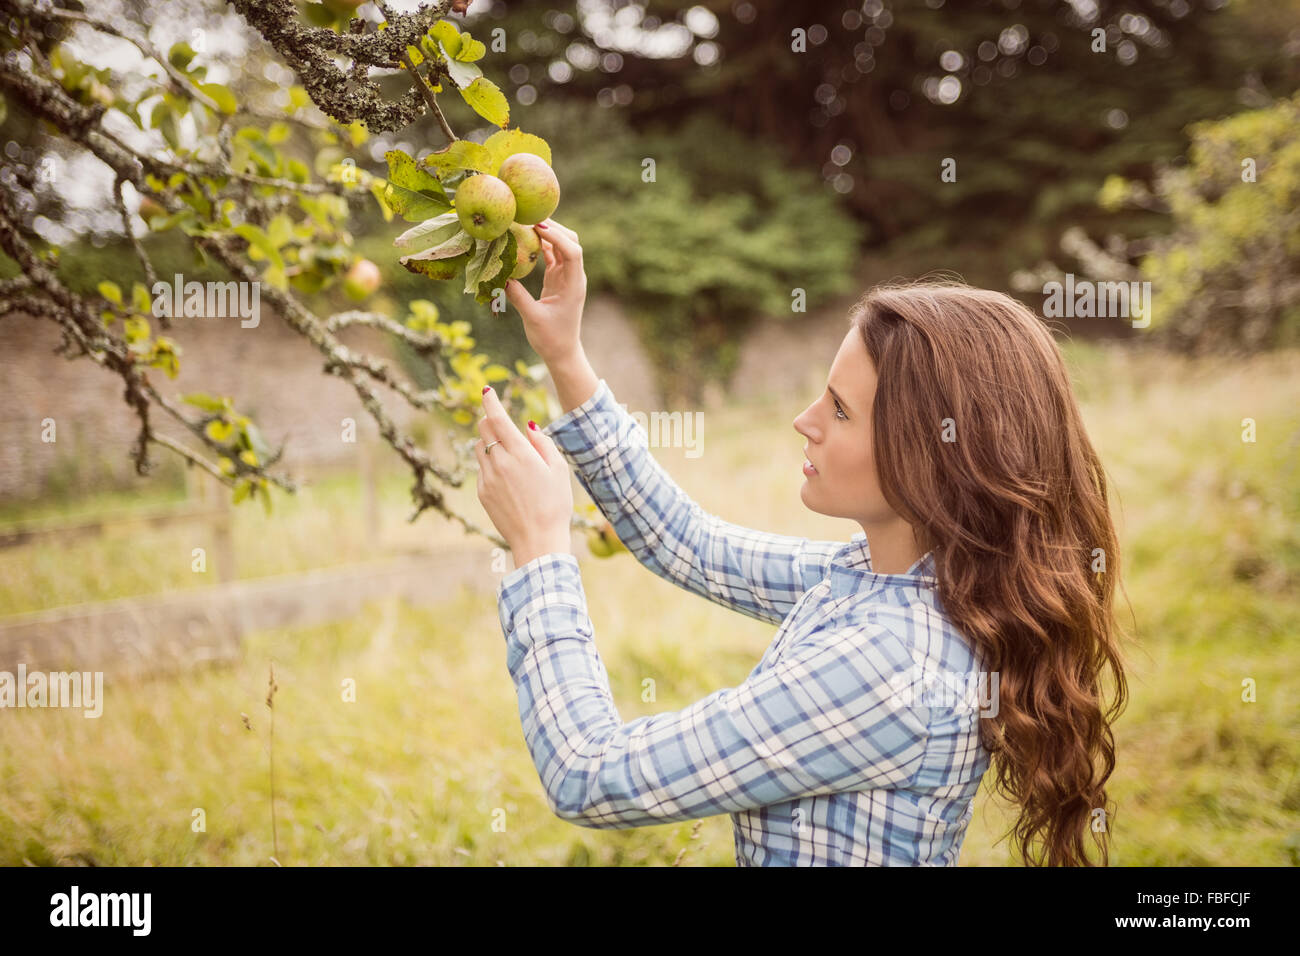 Farmer woman touching apple - Stock Image